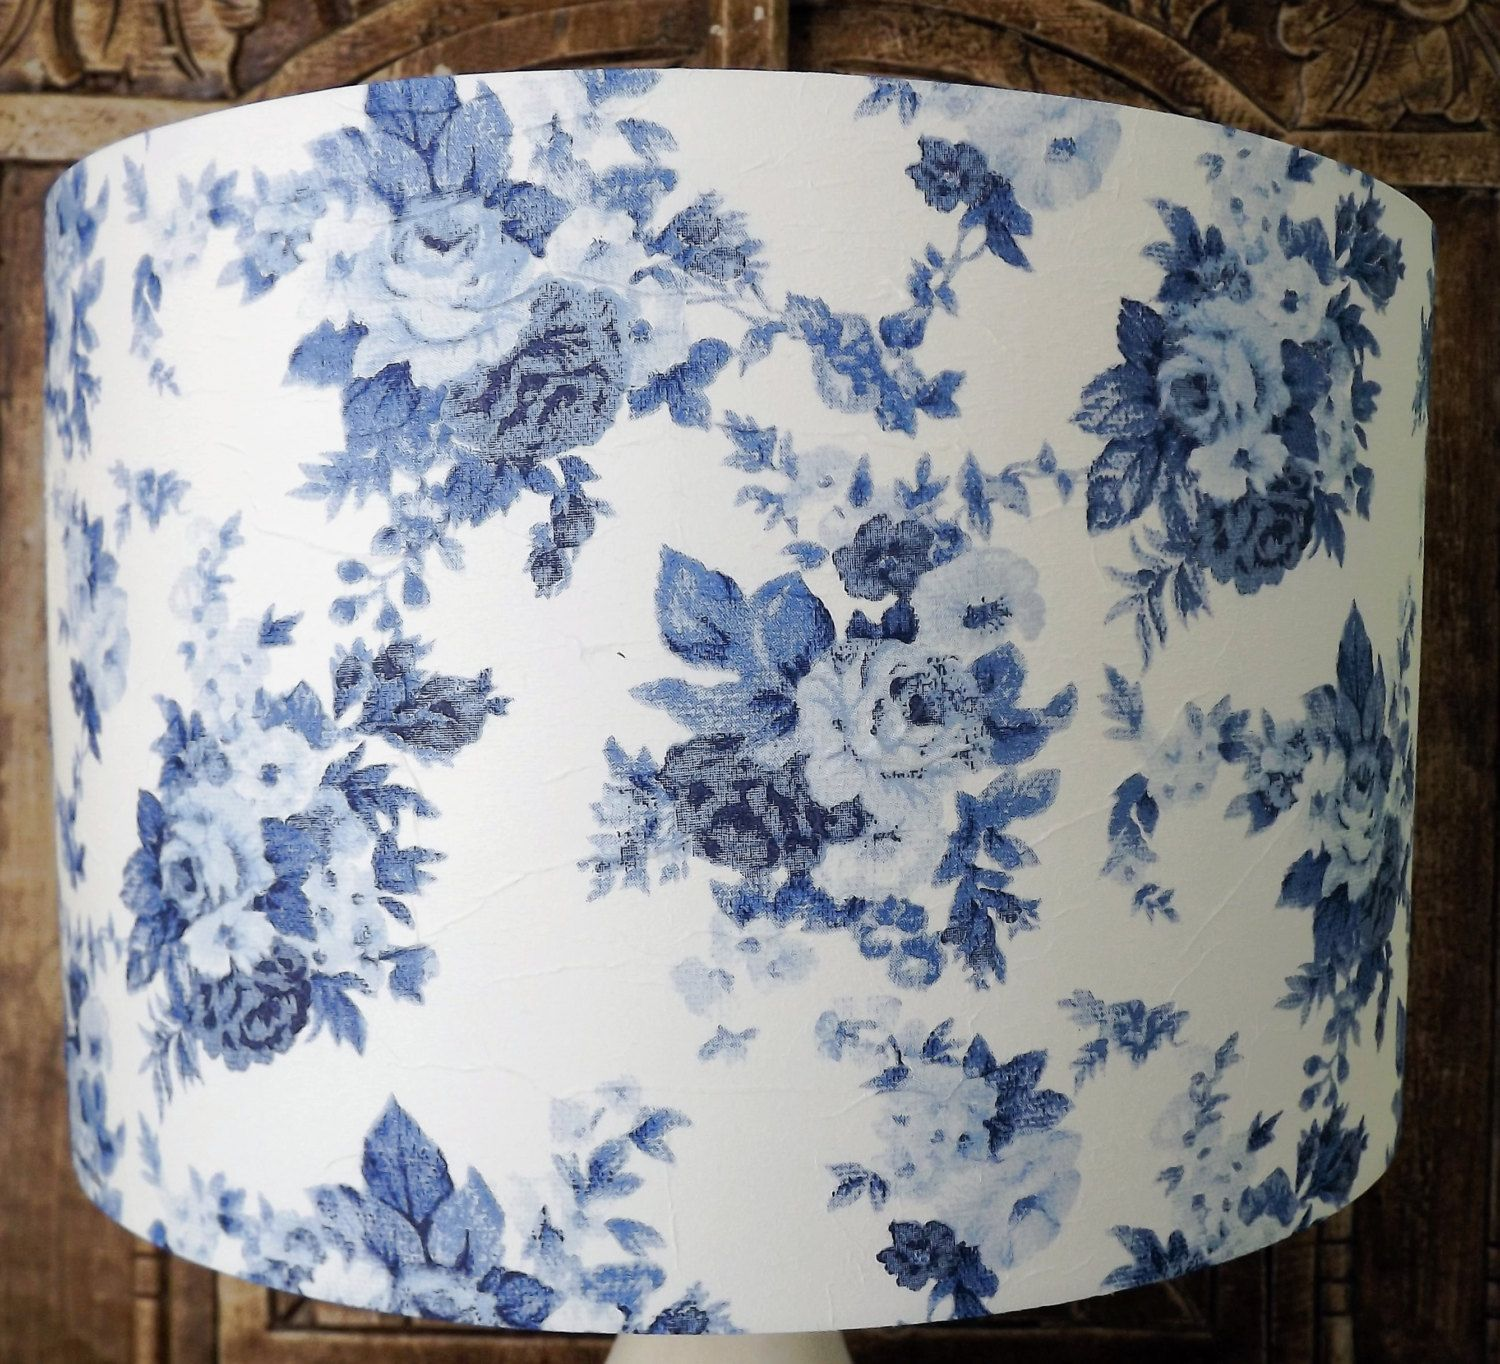 Blue and white rose floral lampshade shabby chic lamp shade blue and white rose floral lampshade shabby chic lamp shade cottage bedroom free gift aloadofball Image collections